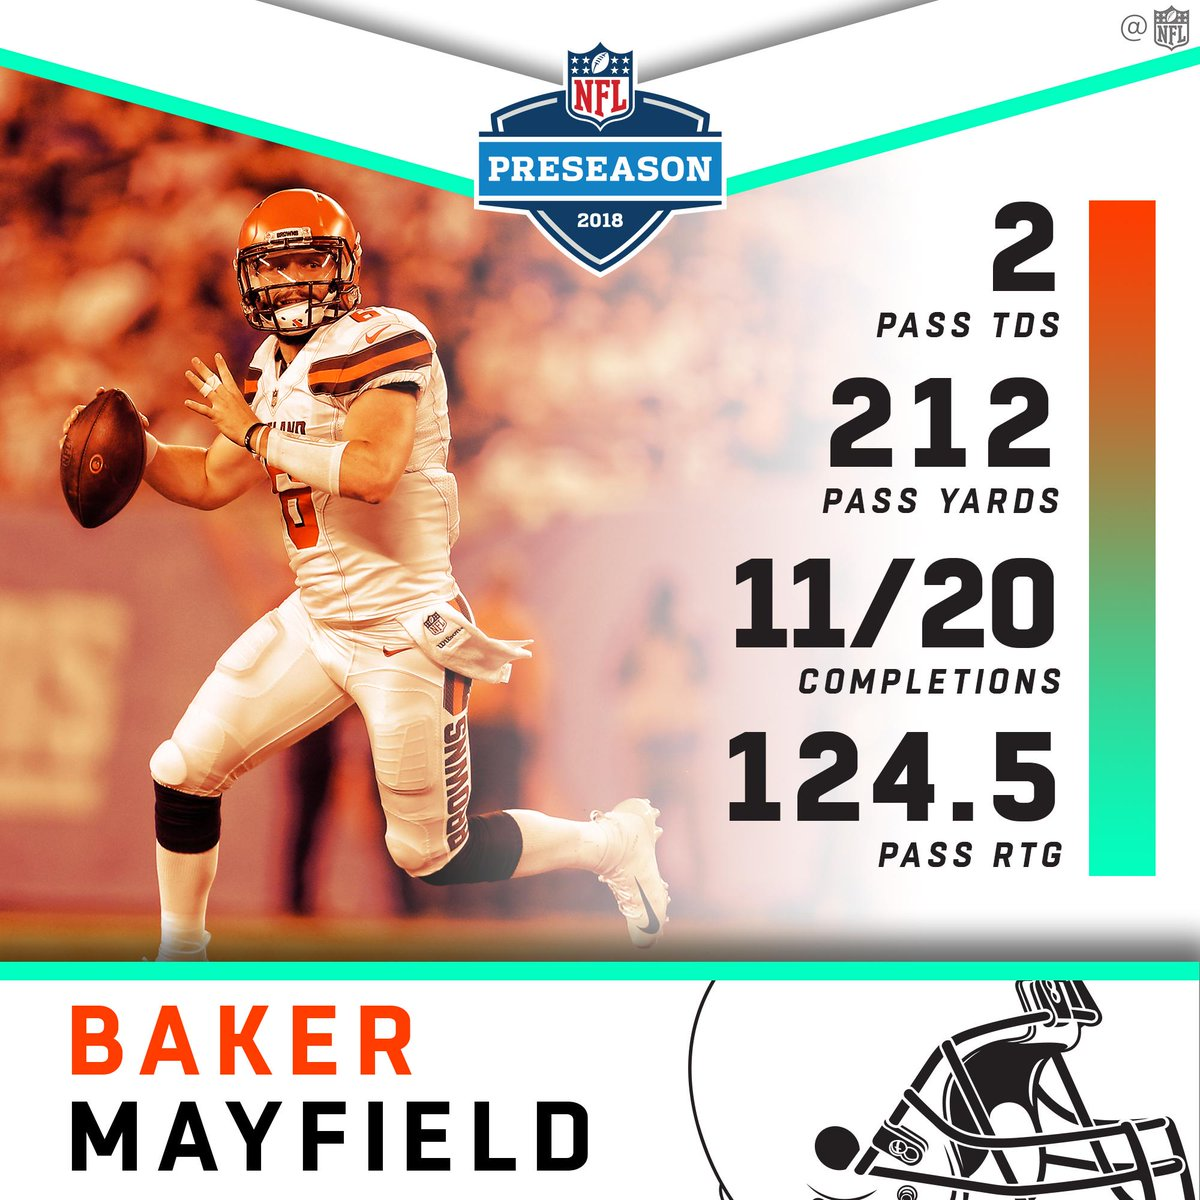 .@bakermayfield put on a show in his preseason debut! #CLEvsNYG <br>http://pic.twitter.com/NQWbpO5zWz